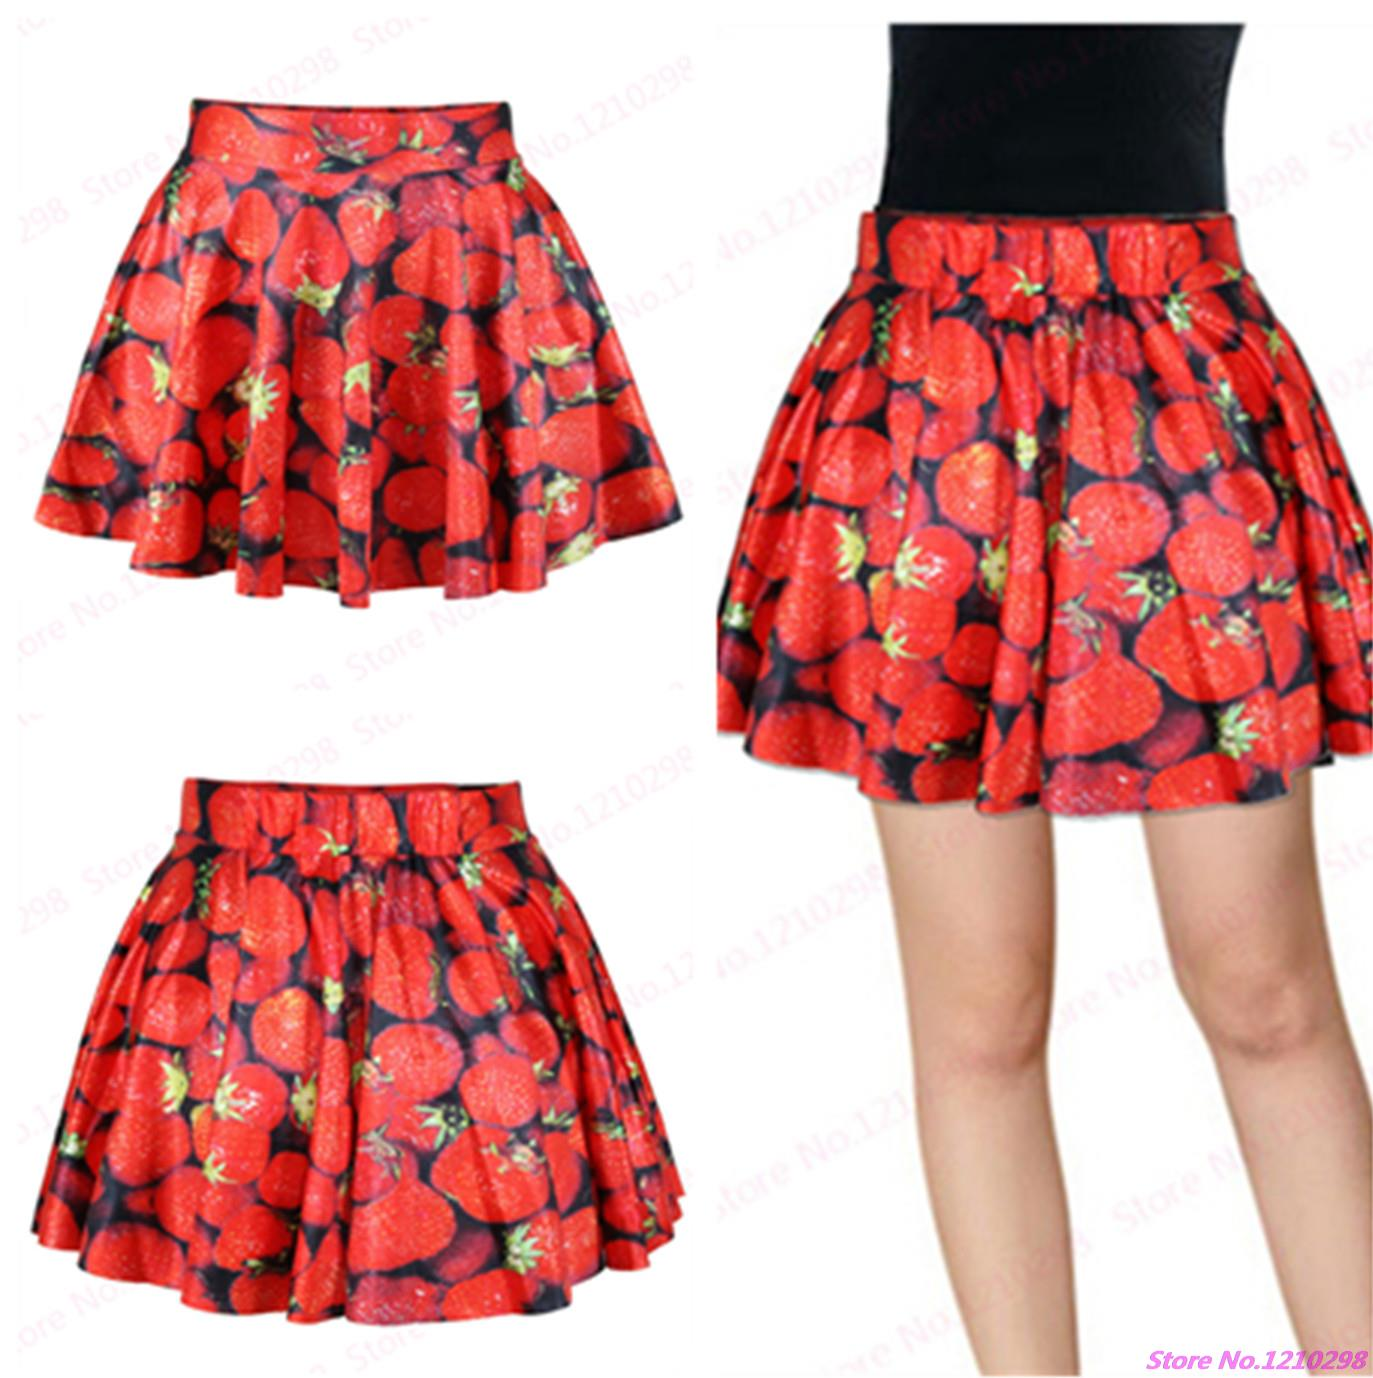 6b136827fd Buy red check skirt and get free shipping on AliExpress.com